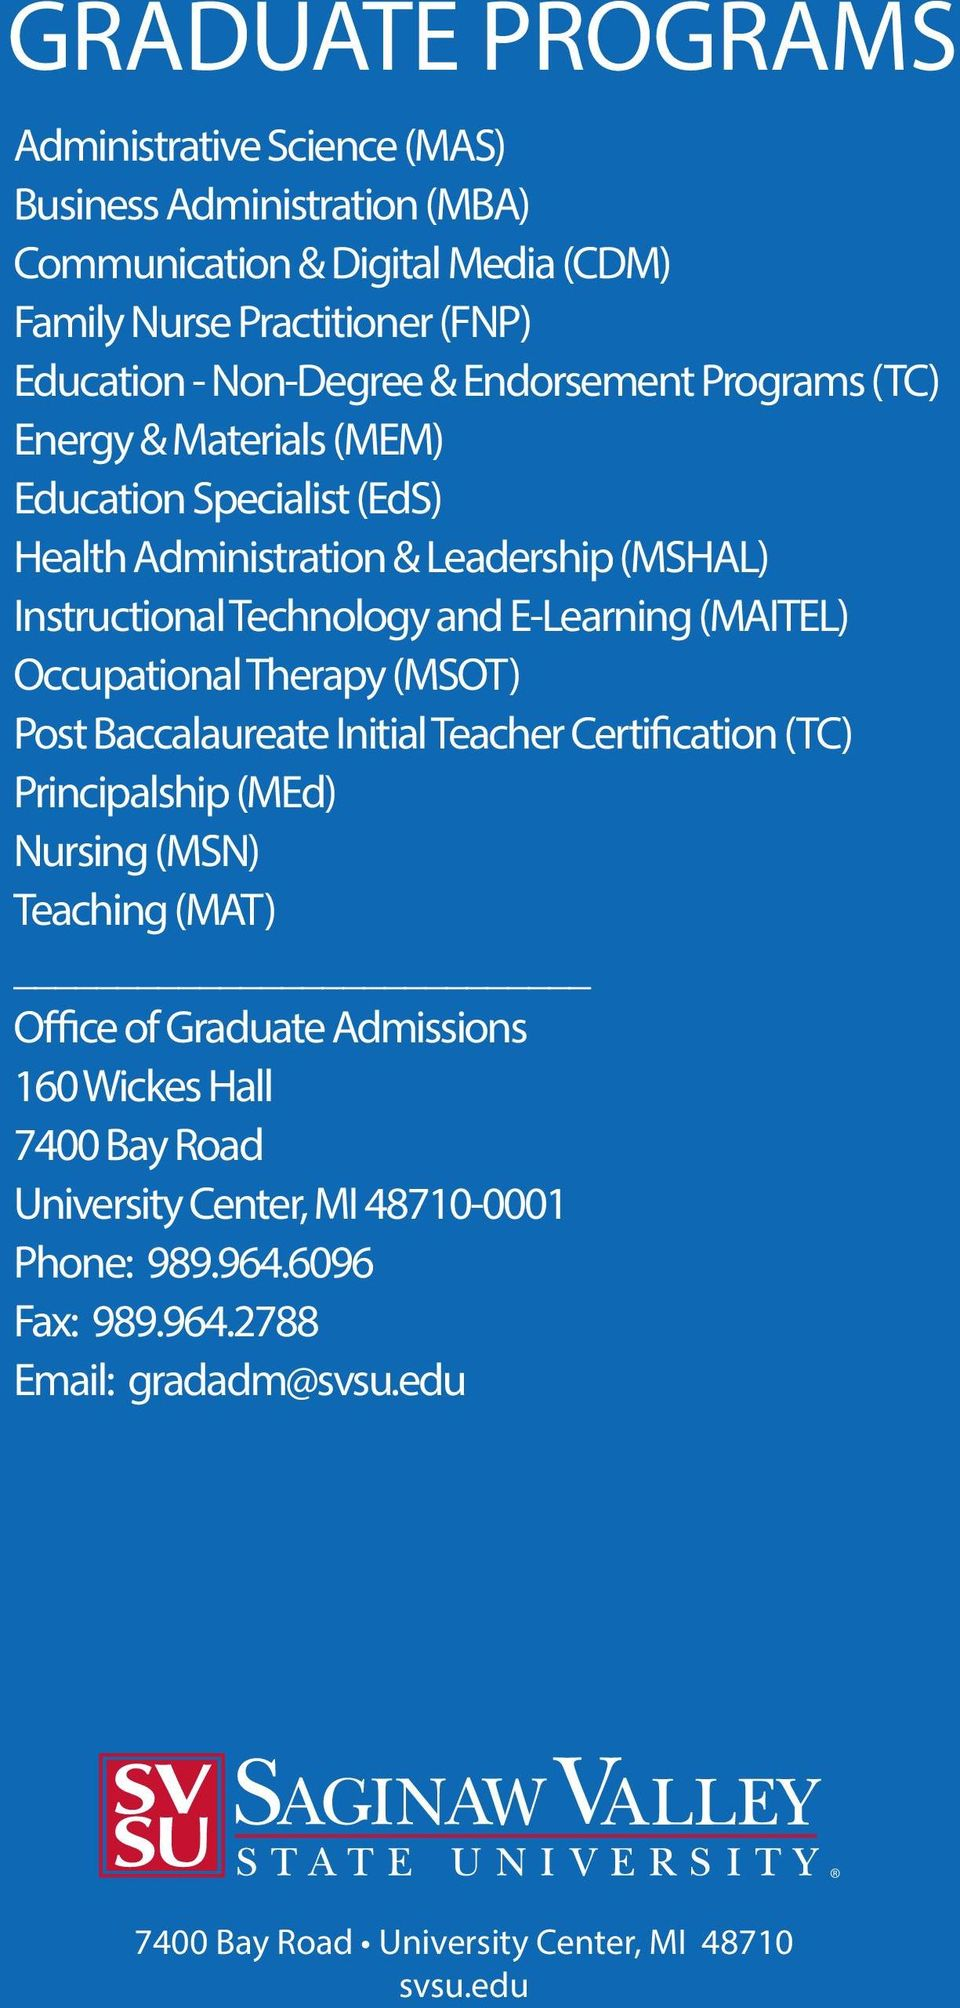 (MAITEL) Occupational Therapy (MSOT) Post Baccalaureate Initial Teacher Certification (TC) Principalship (MEd) Nursing (MSN) Teaching (MAT) Office of Graduate